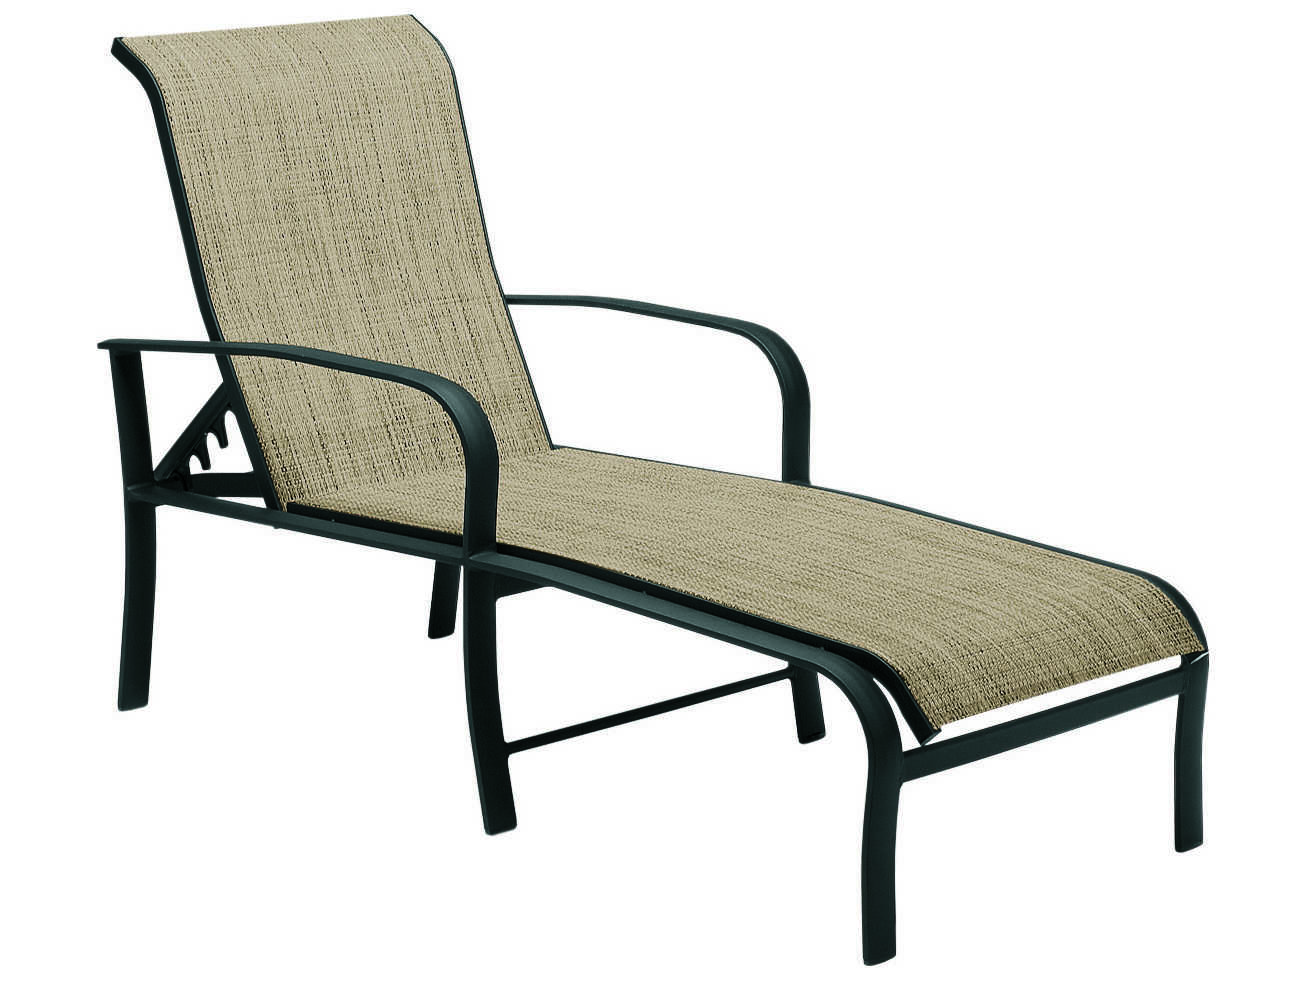 Woodard fremont sling aluminum adjustable chaise lounge for Aluminum chaise lounges